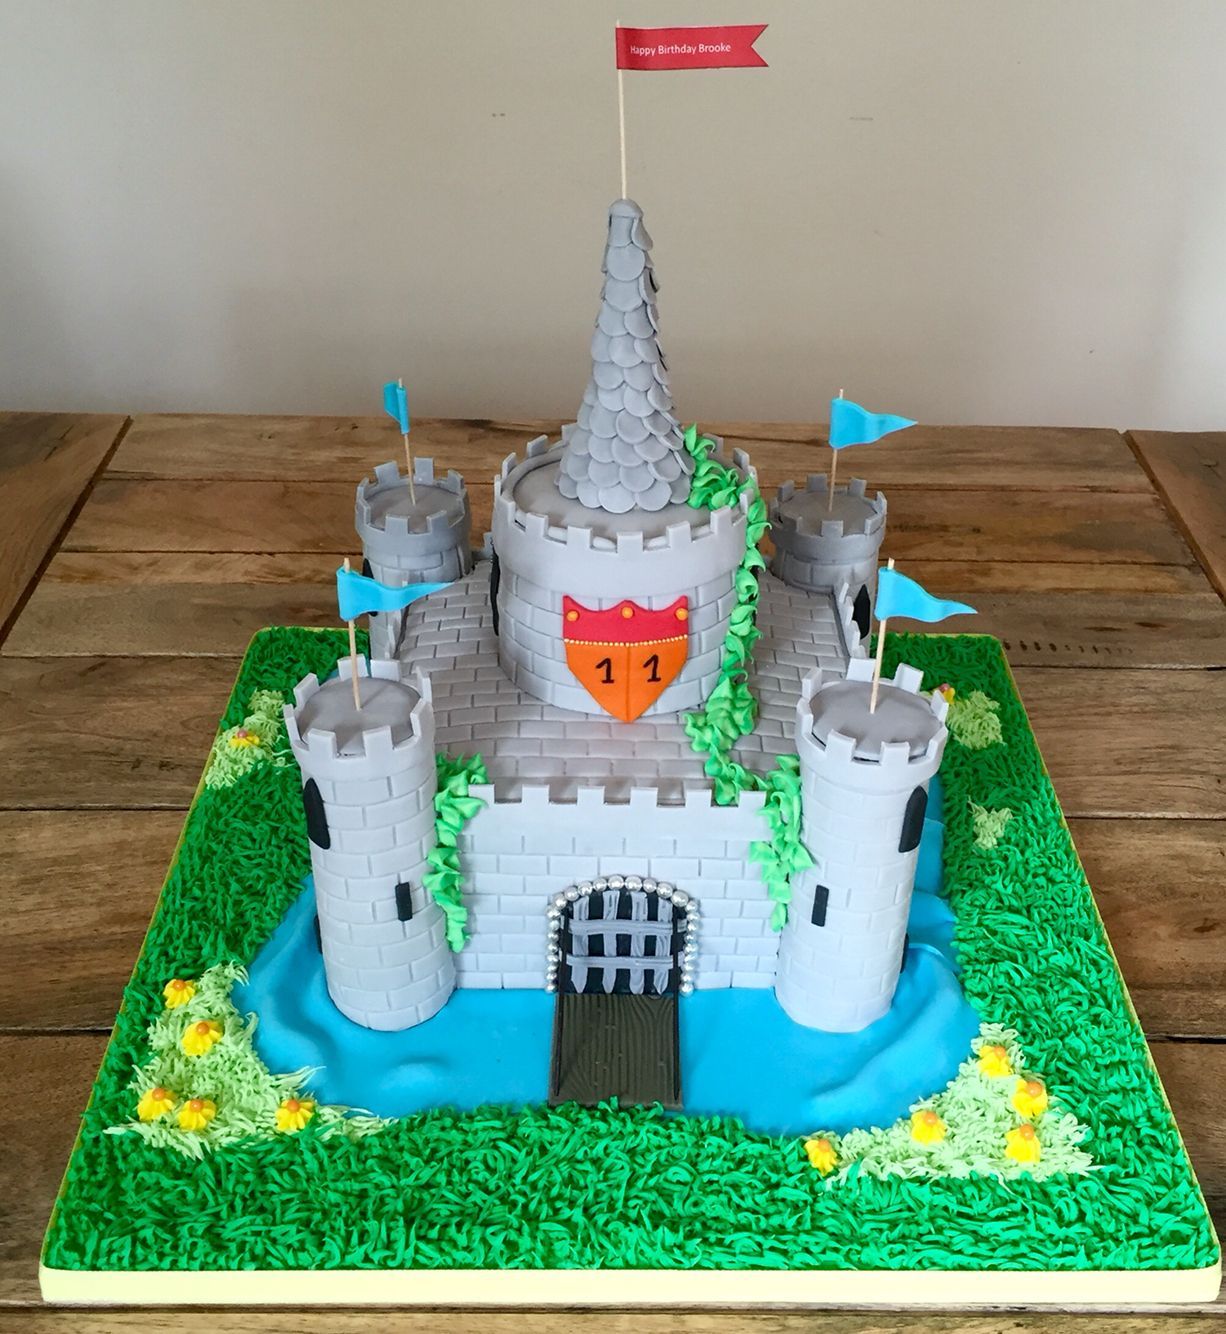 I absolutely loved making this medieval castle cake From the